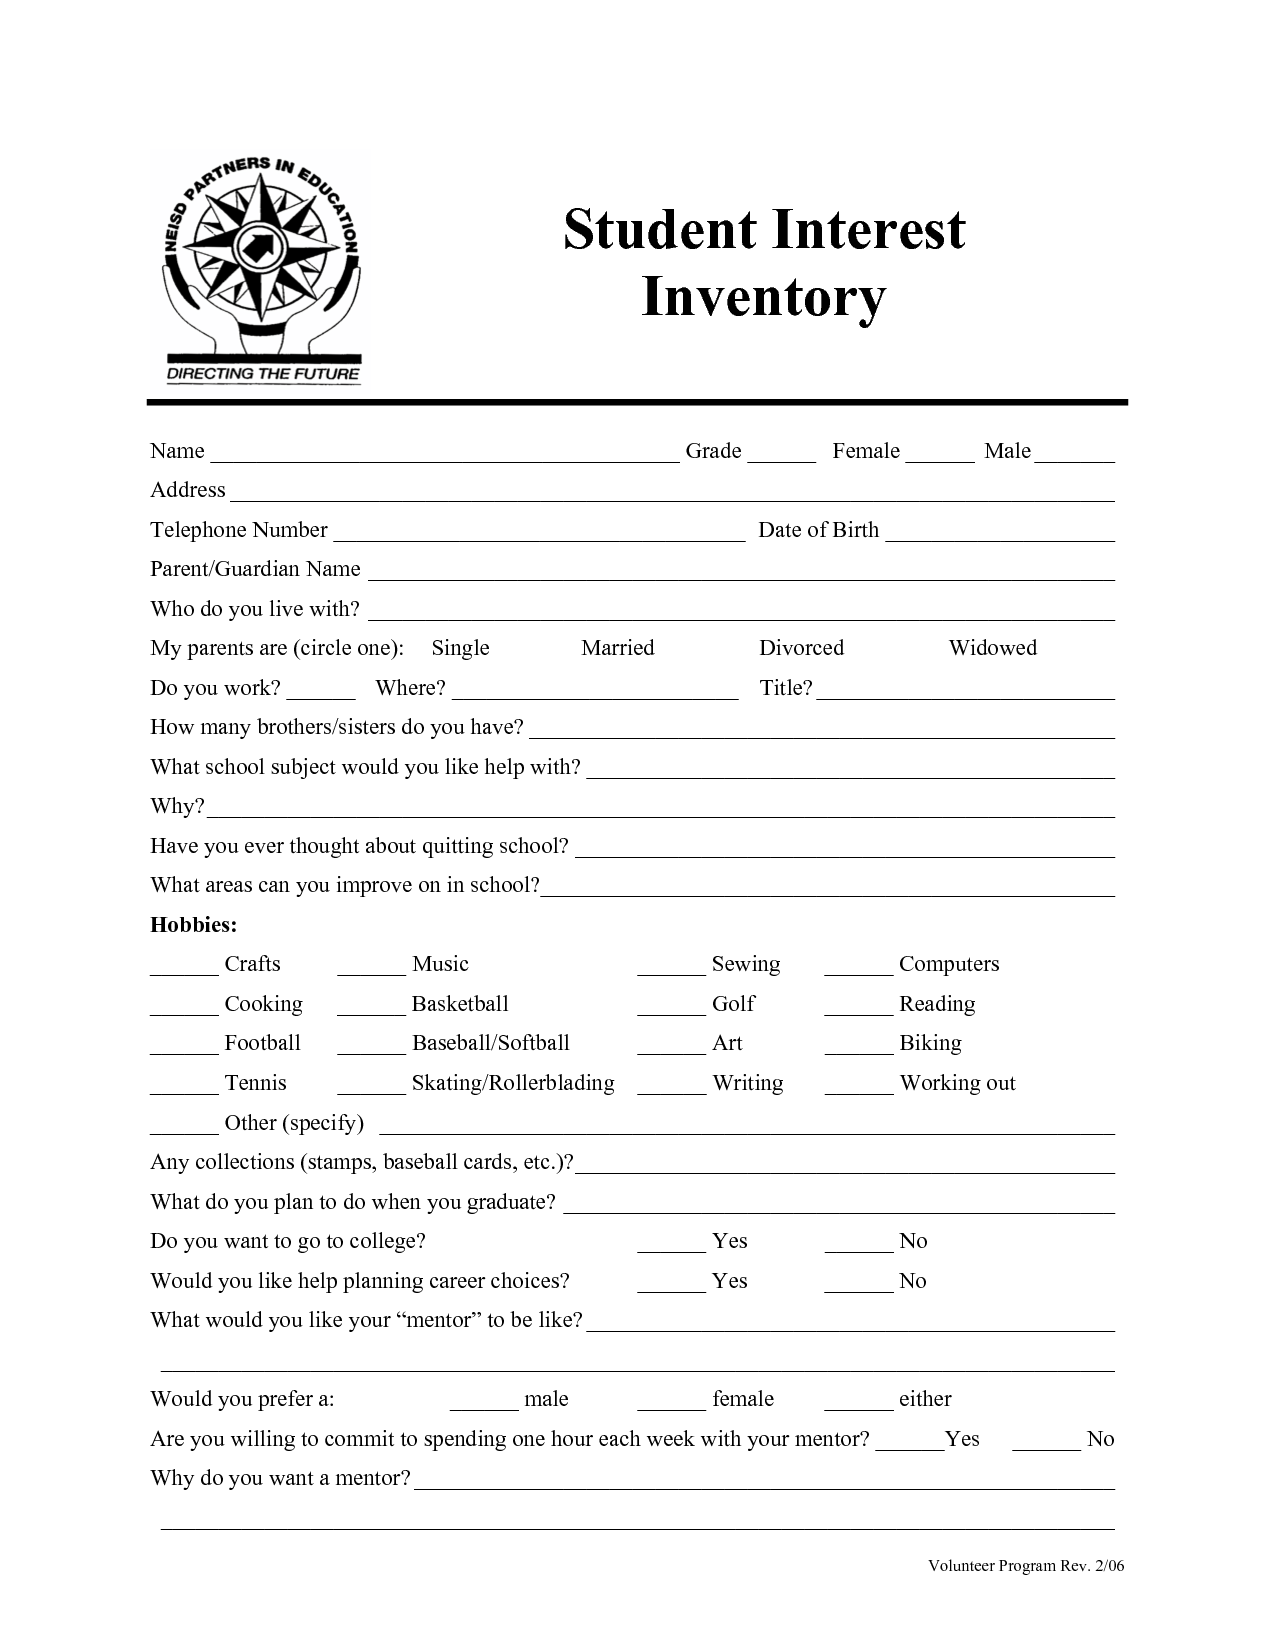 Career Survey For Middle School Students Homeschooling A